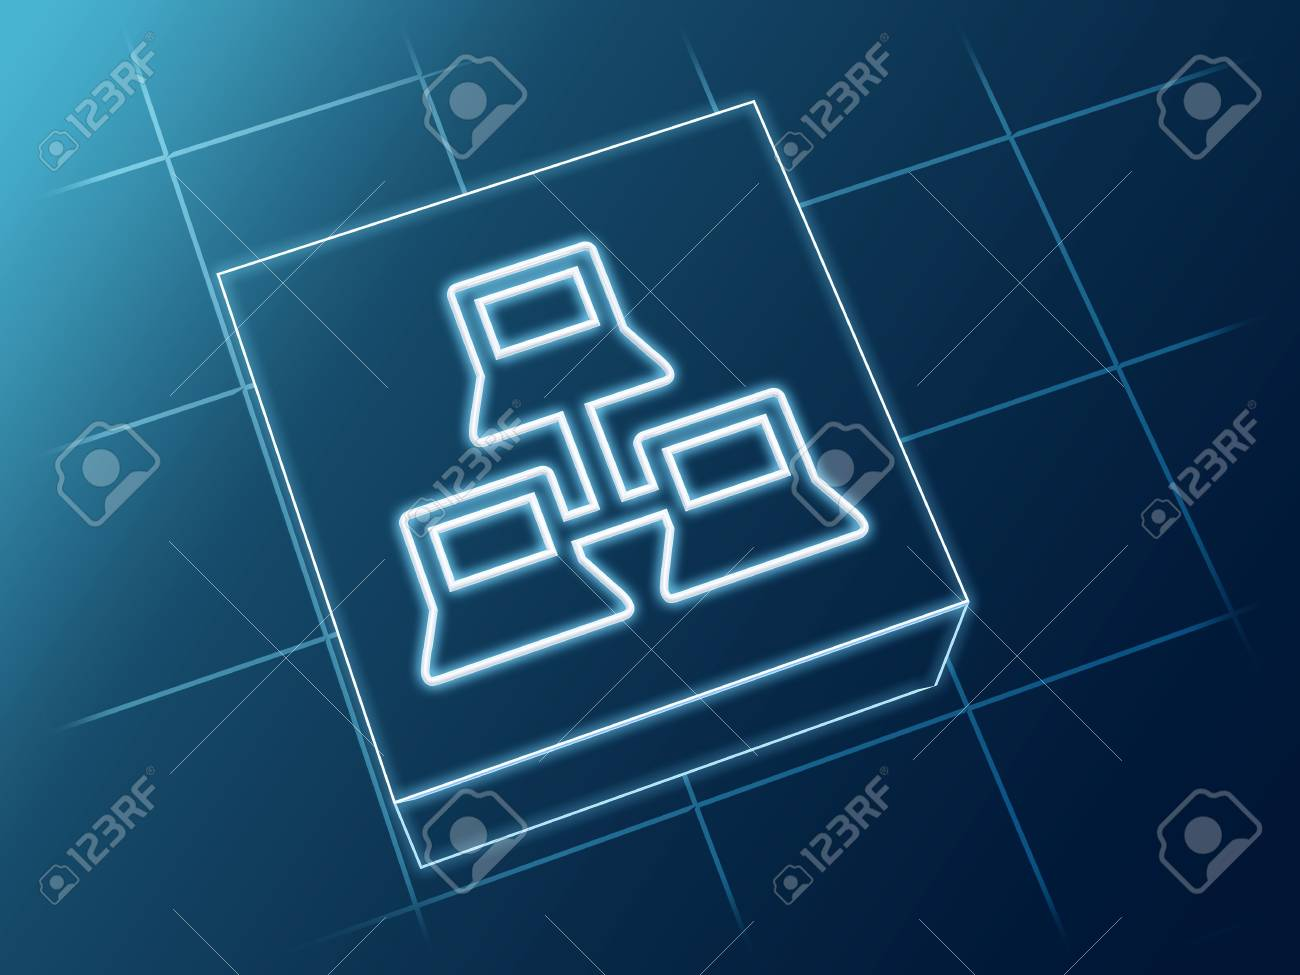 wire glowing Network sign over box and net Stock Photo - 20097838